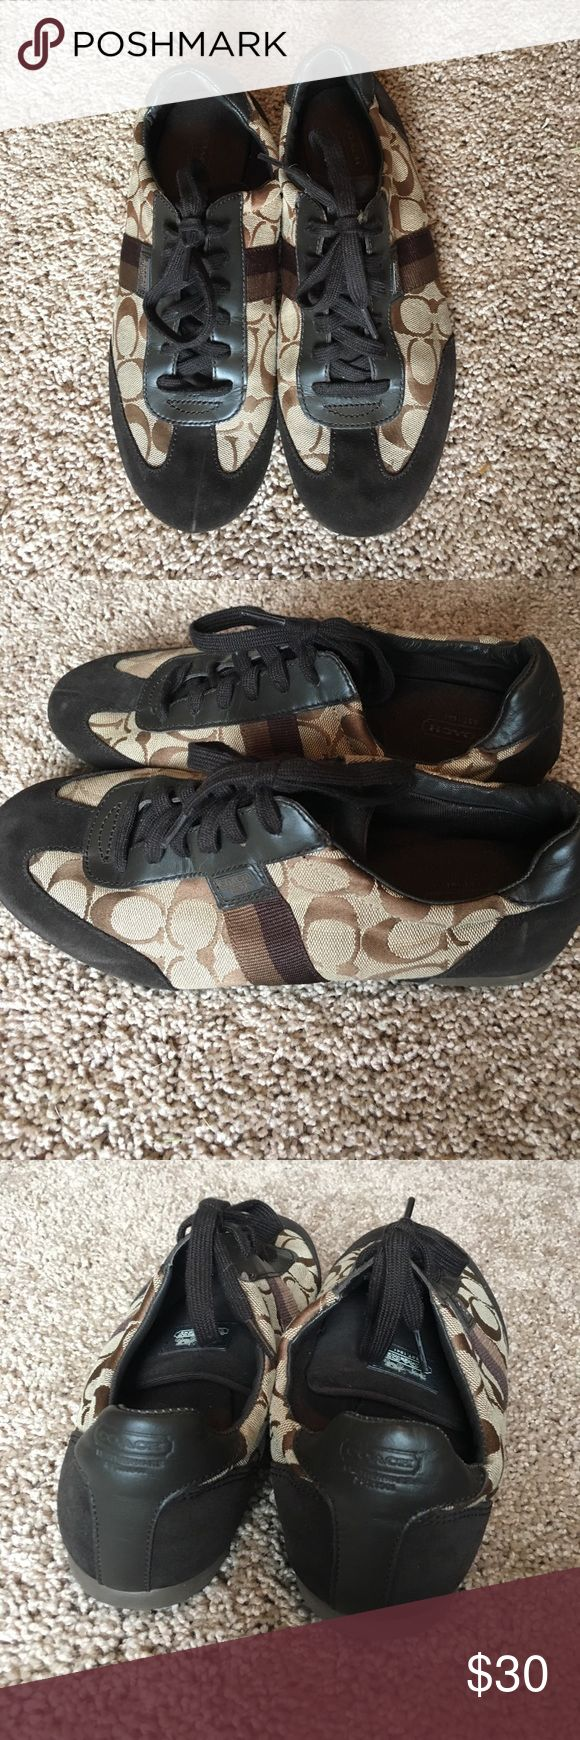 Coach tennis shoes Tan and brown Coach tennis shoes! Only worn a few times! Coach Shoes Sneakers